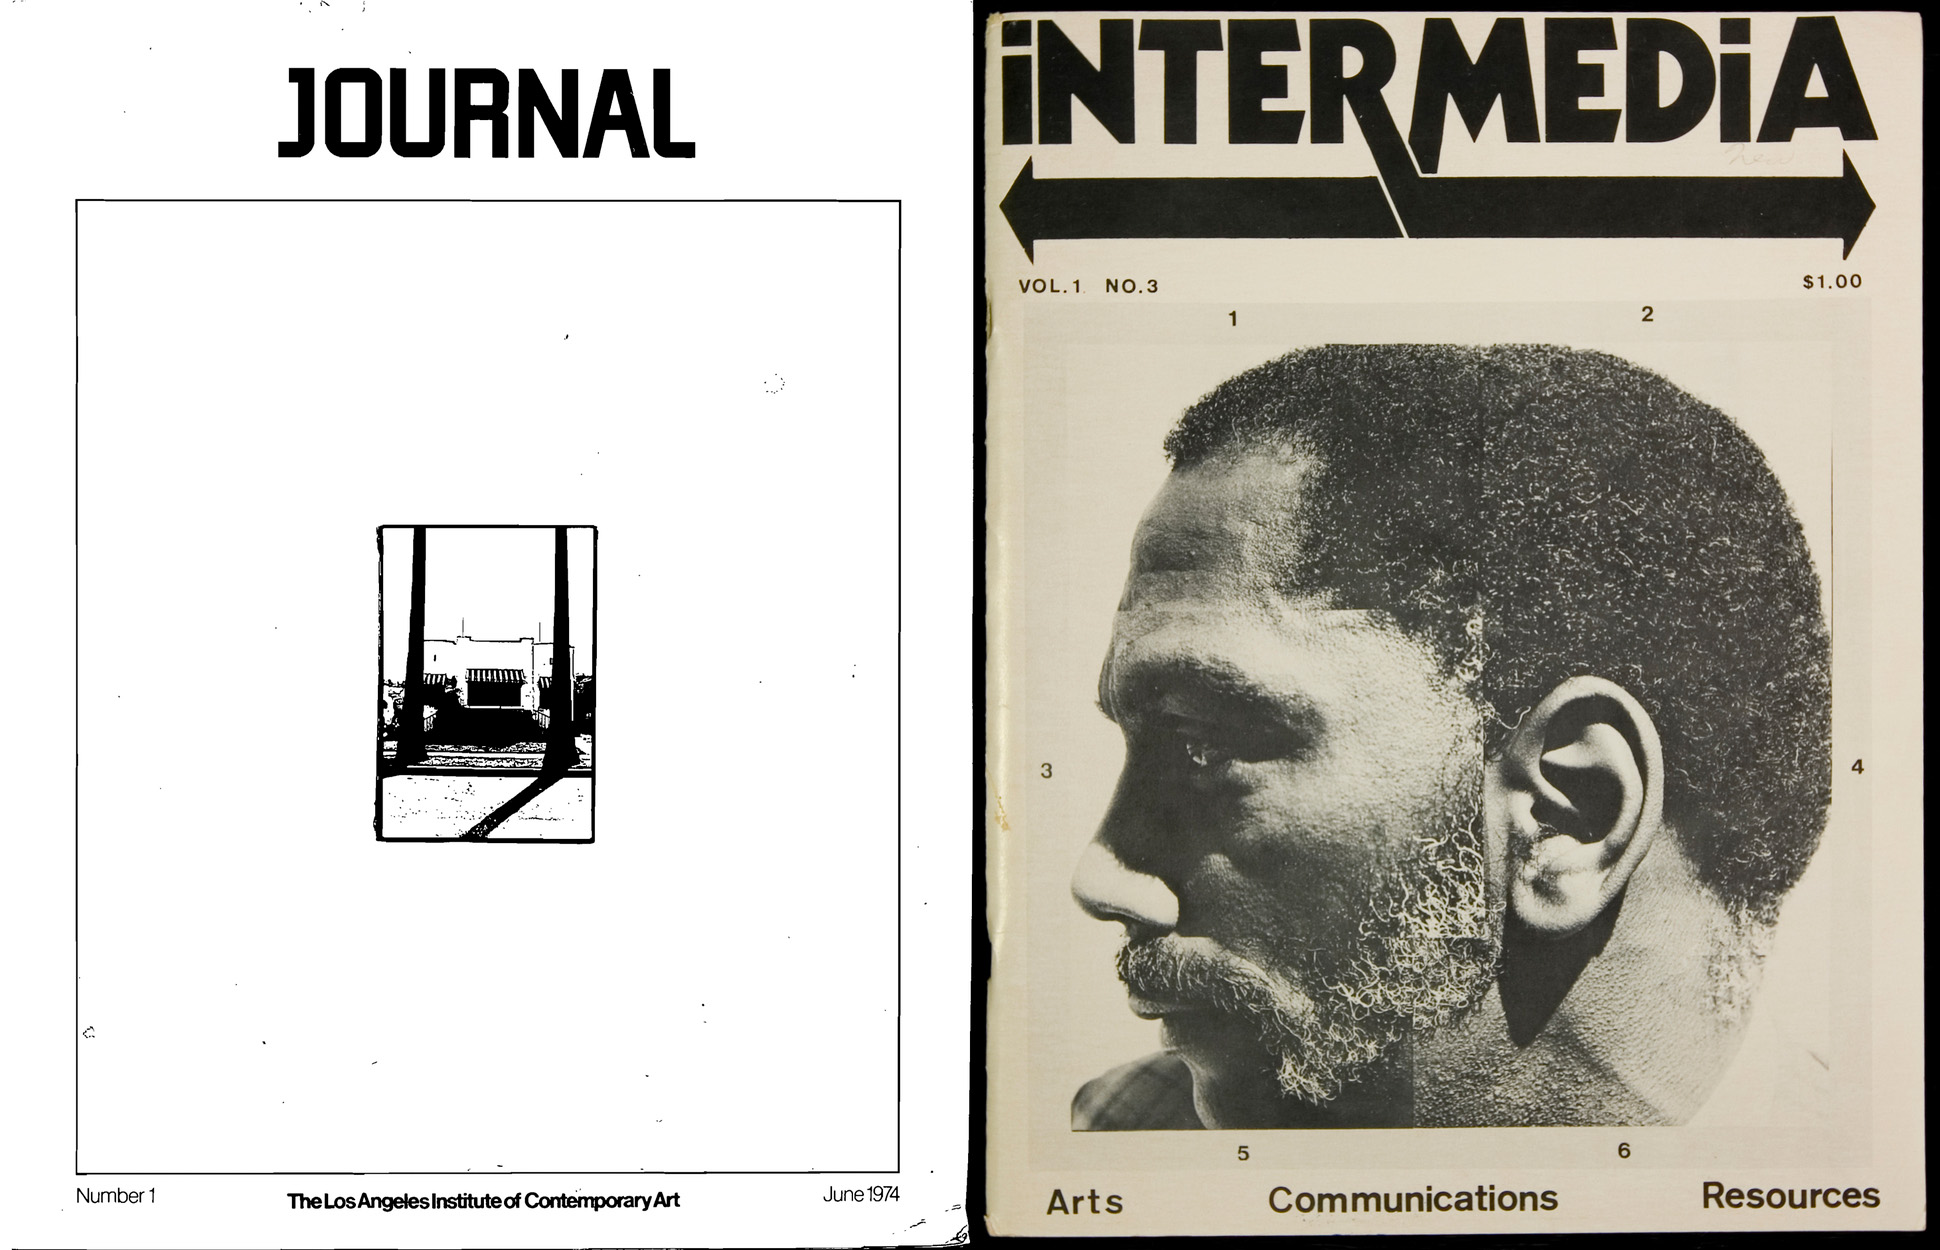 "Left: Cover of <em>LAICA Journal</em></a> Vol. 1, Issue 1 (June 1974). Courtesy of Robert Smith. Right: Cover of <em>Intermedia</em> Vol. 1, Issue 3 (1975). Courtesy of Harley Lond. To download a PDF of <em> LAICA Journal</em> Vol. 1, Issue 1 (June 1974), click <a href=""http://s3.amazonaws.com/eob_texts-production/texts/91/1326838015_Excerpt%20from%20LAICA%20Journal%20Number%201%20June%201974.pdf?1326838015"" target=""_blank"">here</a>."